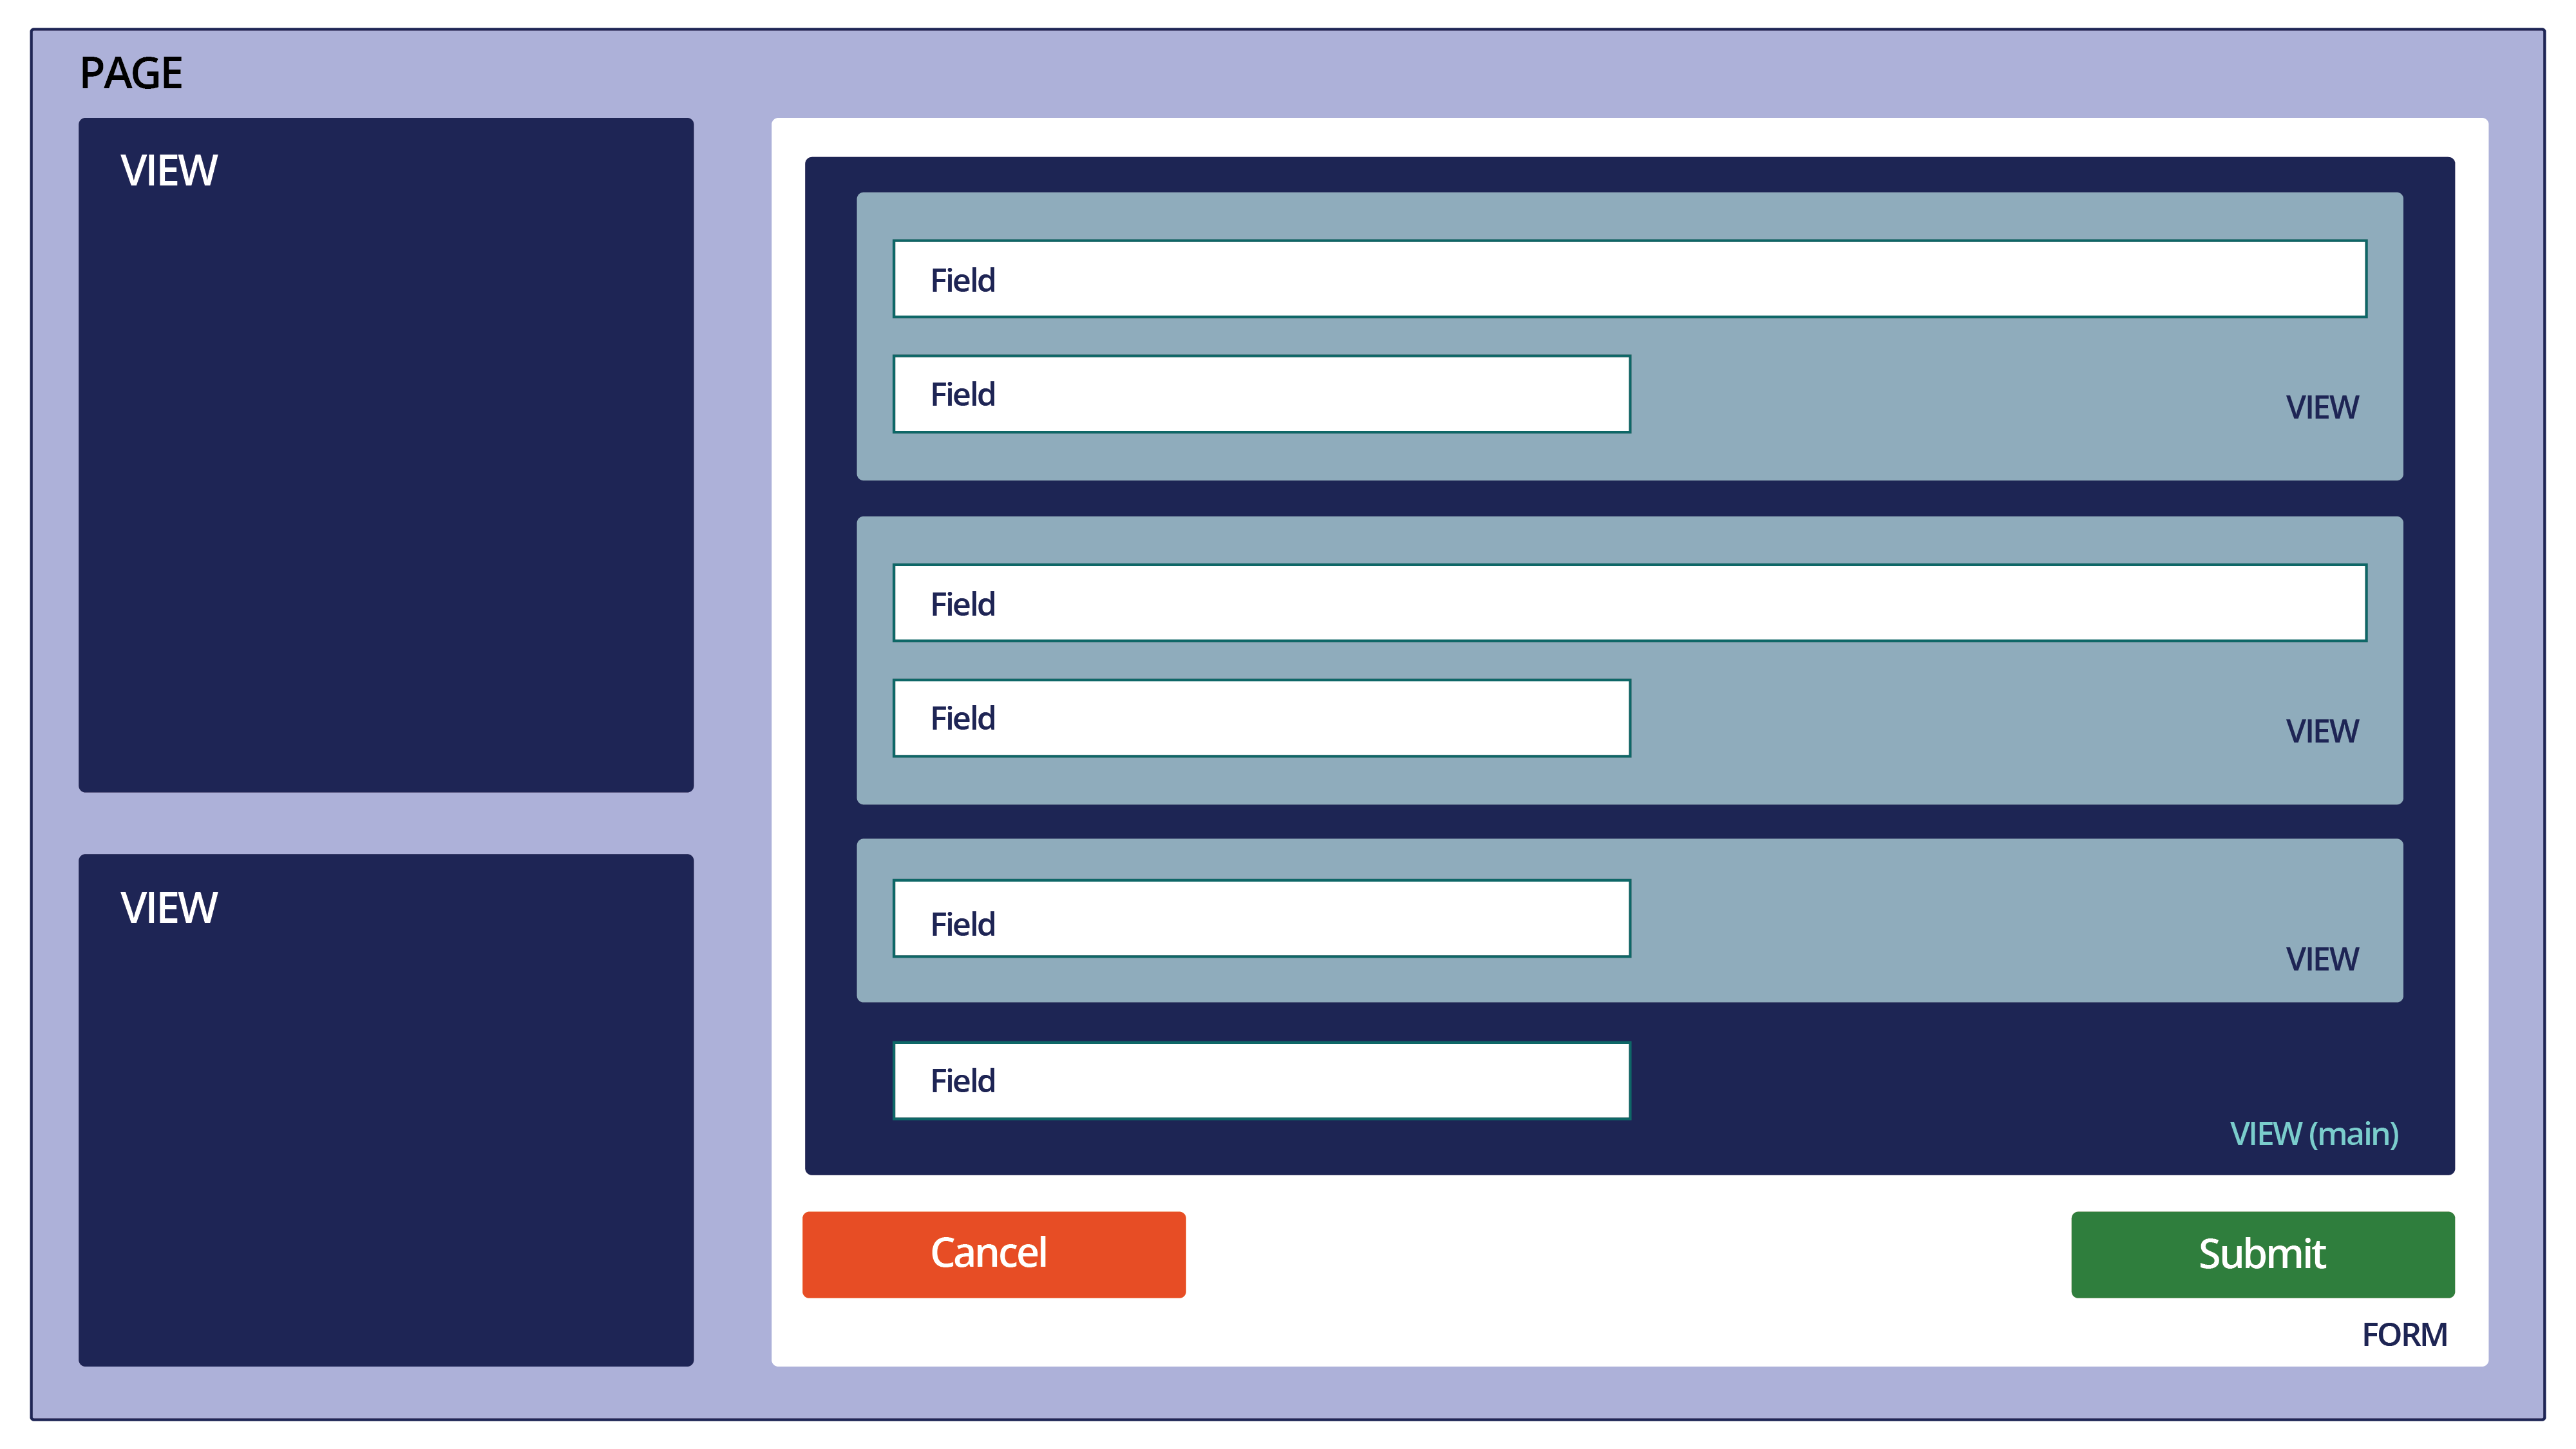 Page contains views and forms. Views contain fields and other views. A                             page has one dominant view.